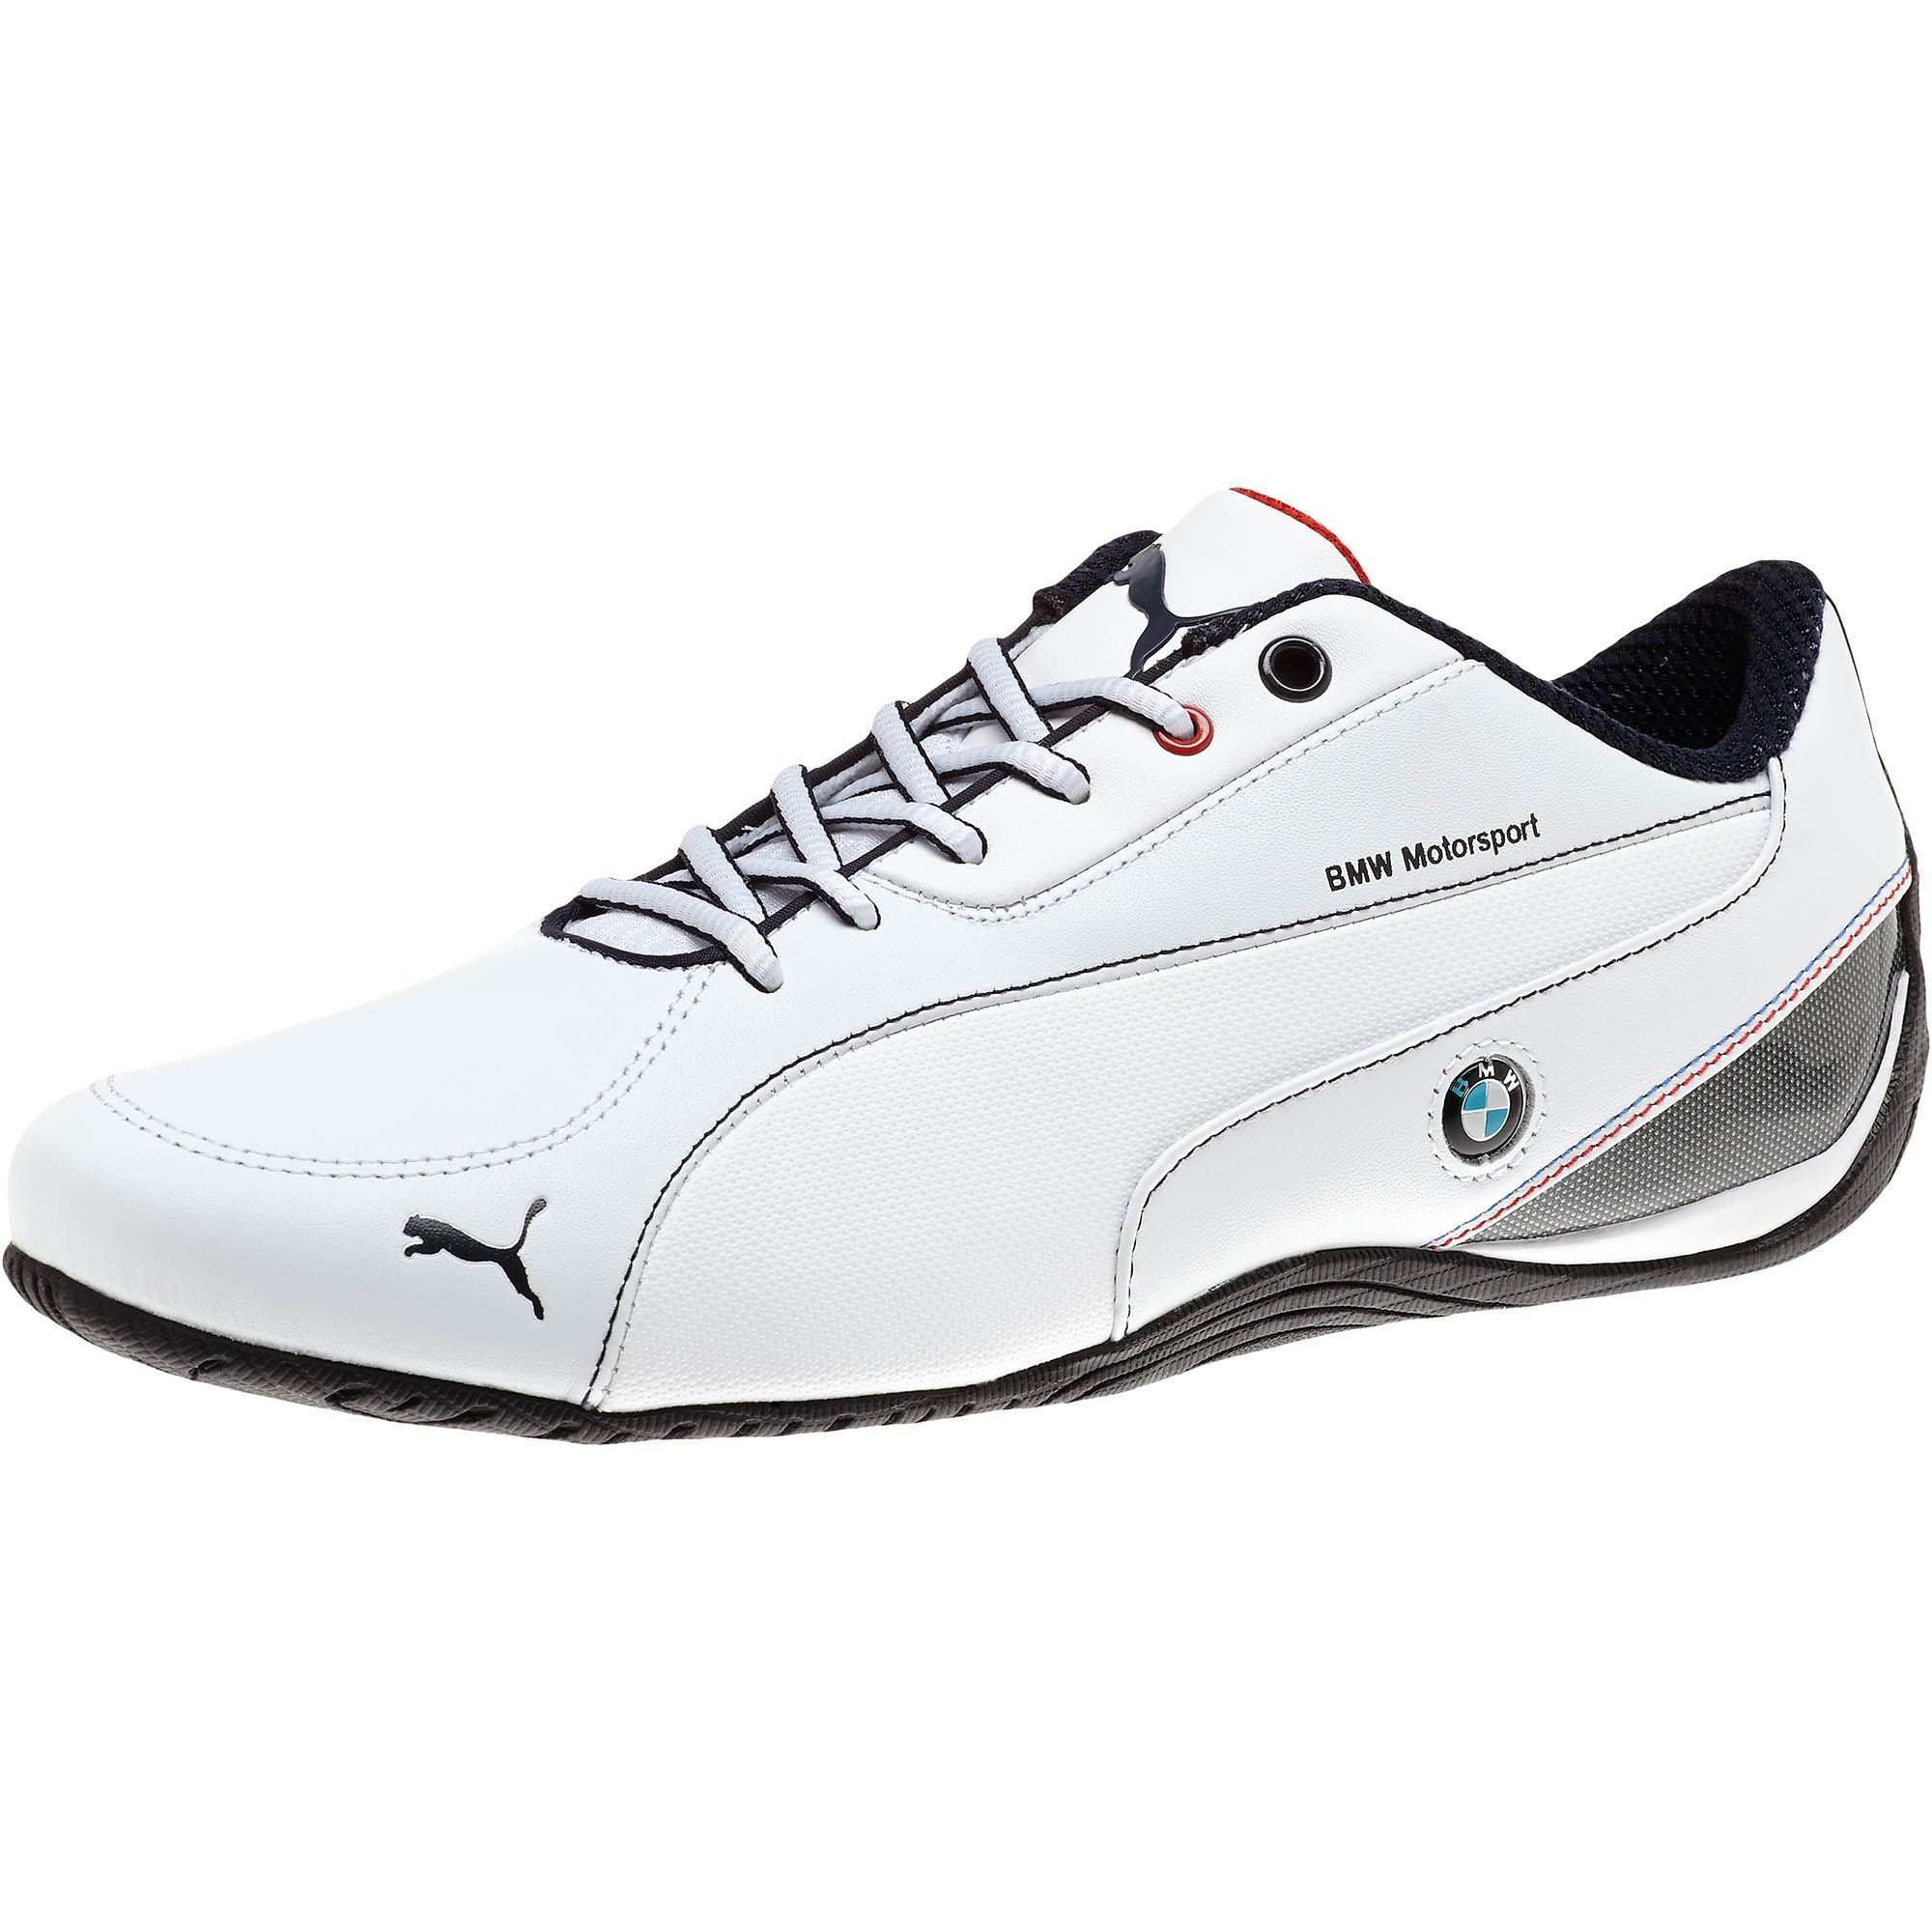 Puma Bmw Drift Cat 5 Nm Men S Shoes From The Official Puma Online Store Sneakers Men Fashion Mens Sneakers Casual Puma Sports Shoes